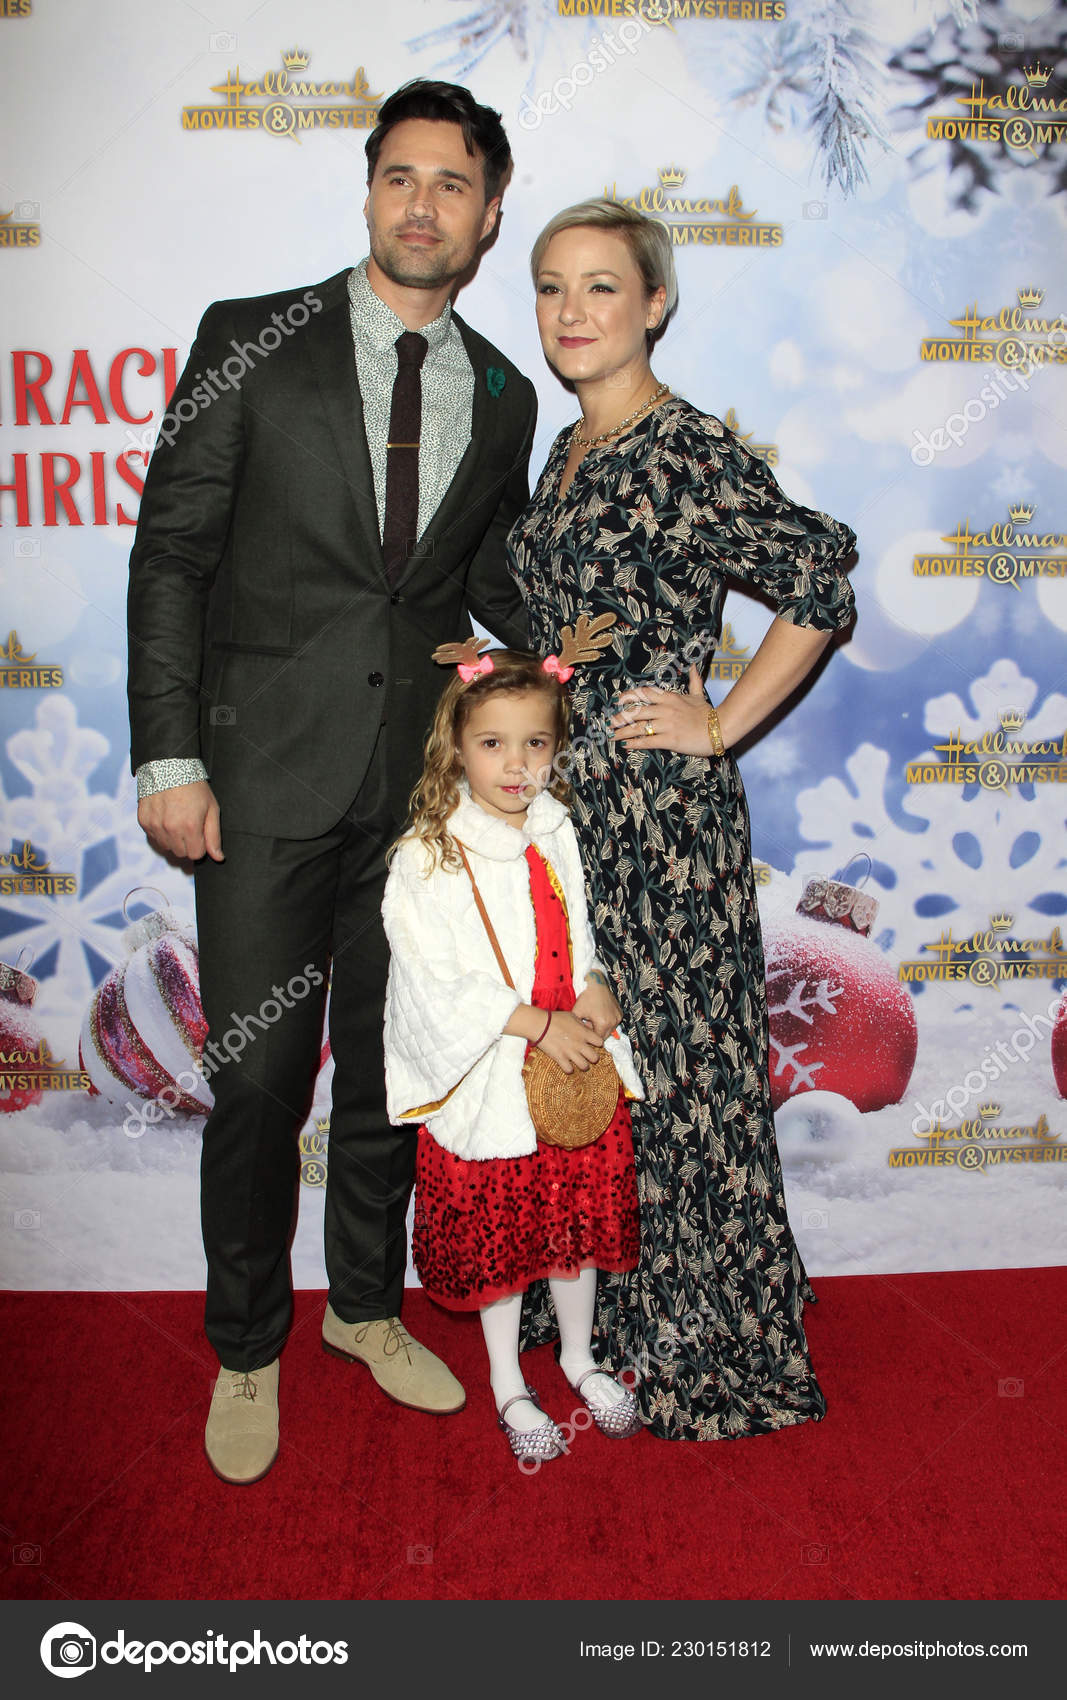 Once Upon A Christmas Miracle.Los Angeles Dec Brett Dalton Wife Daughter Once Christmas